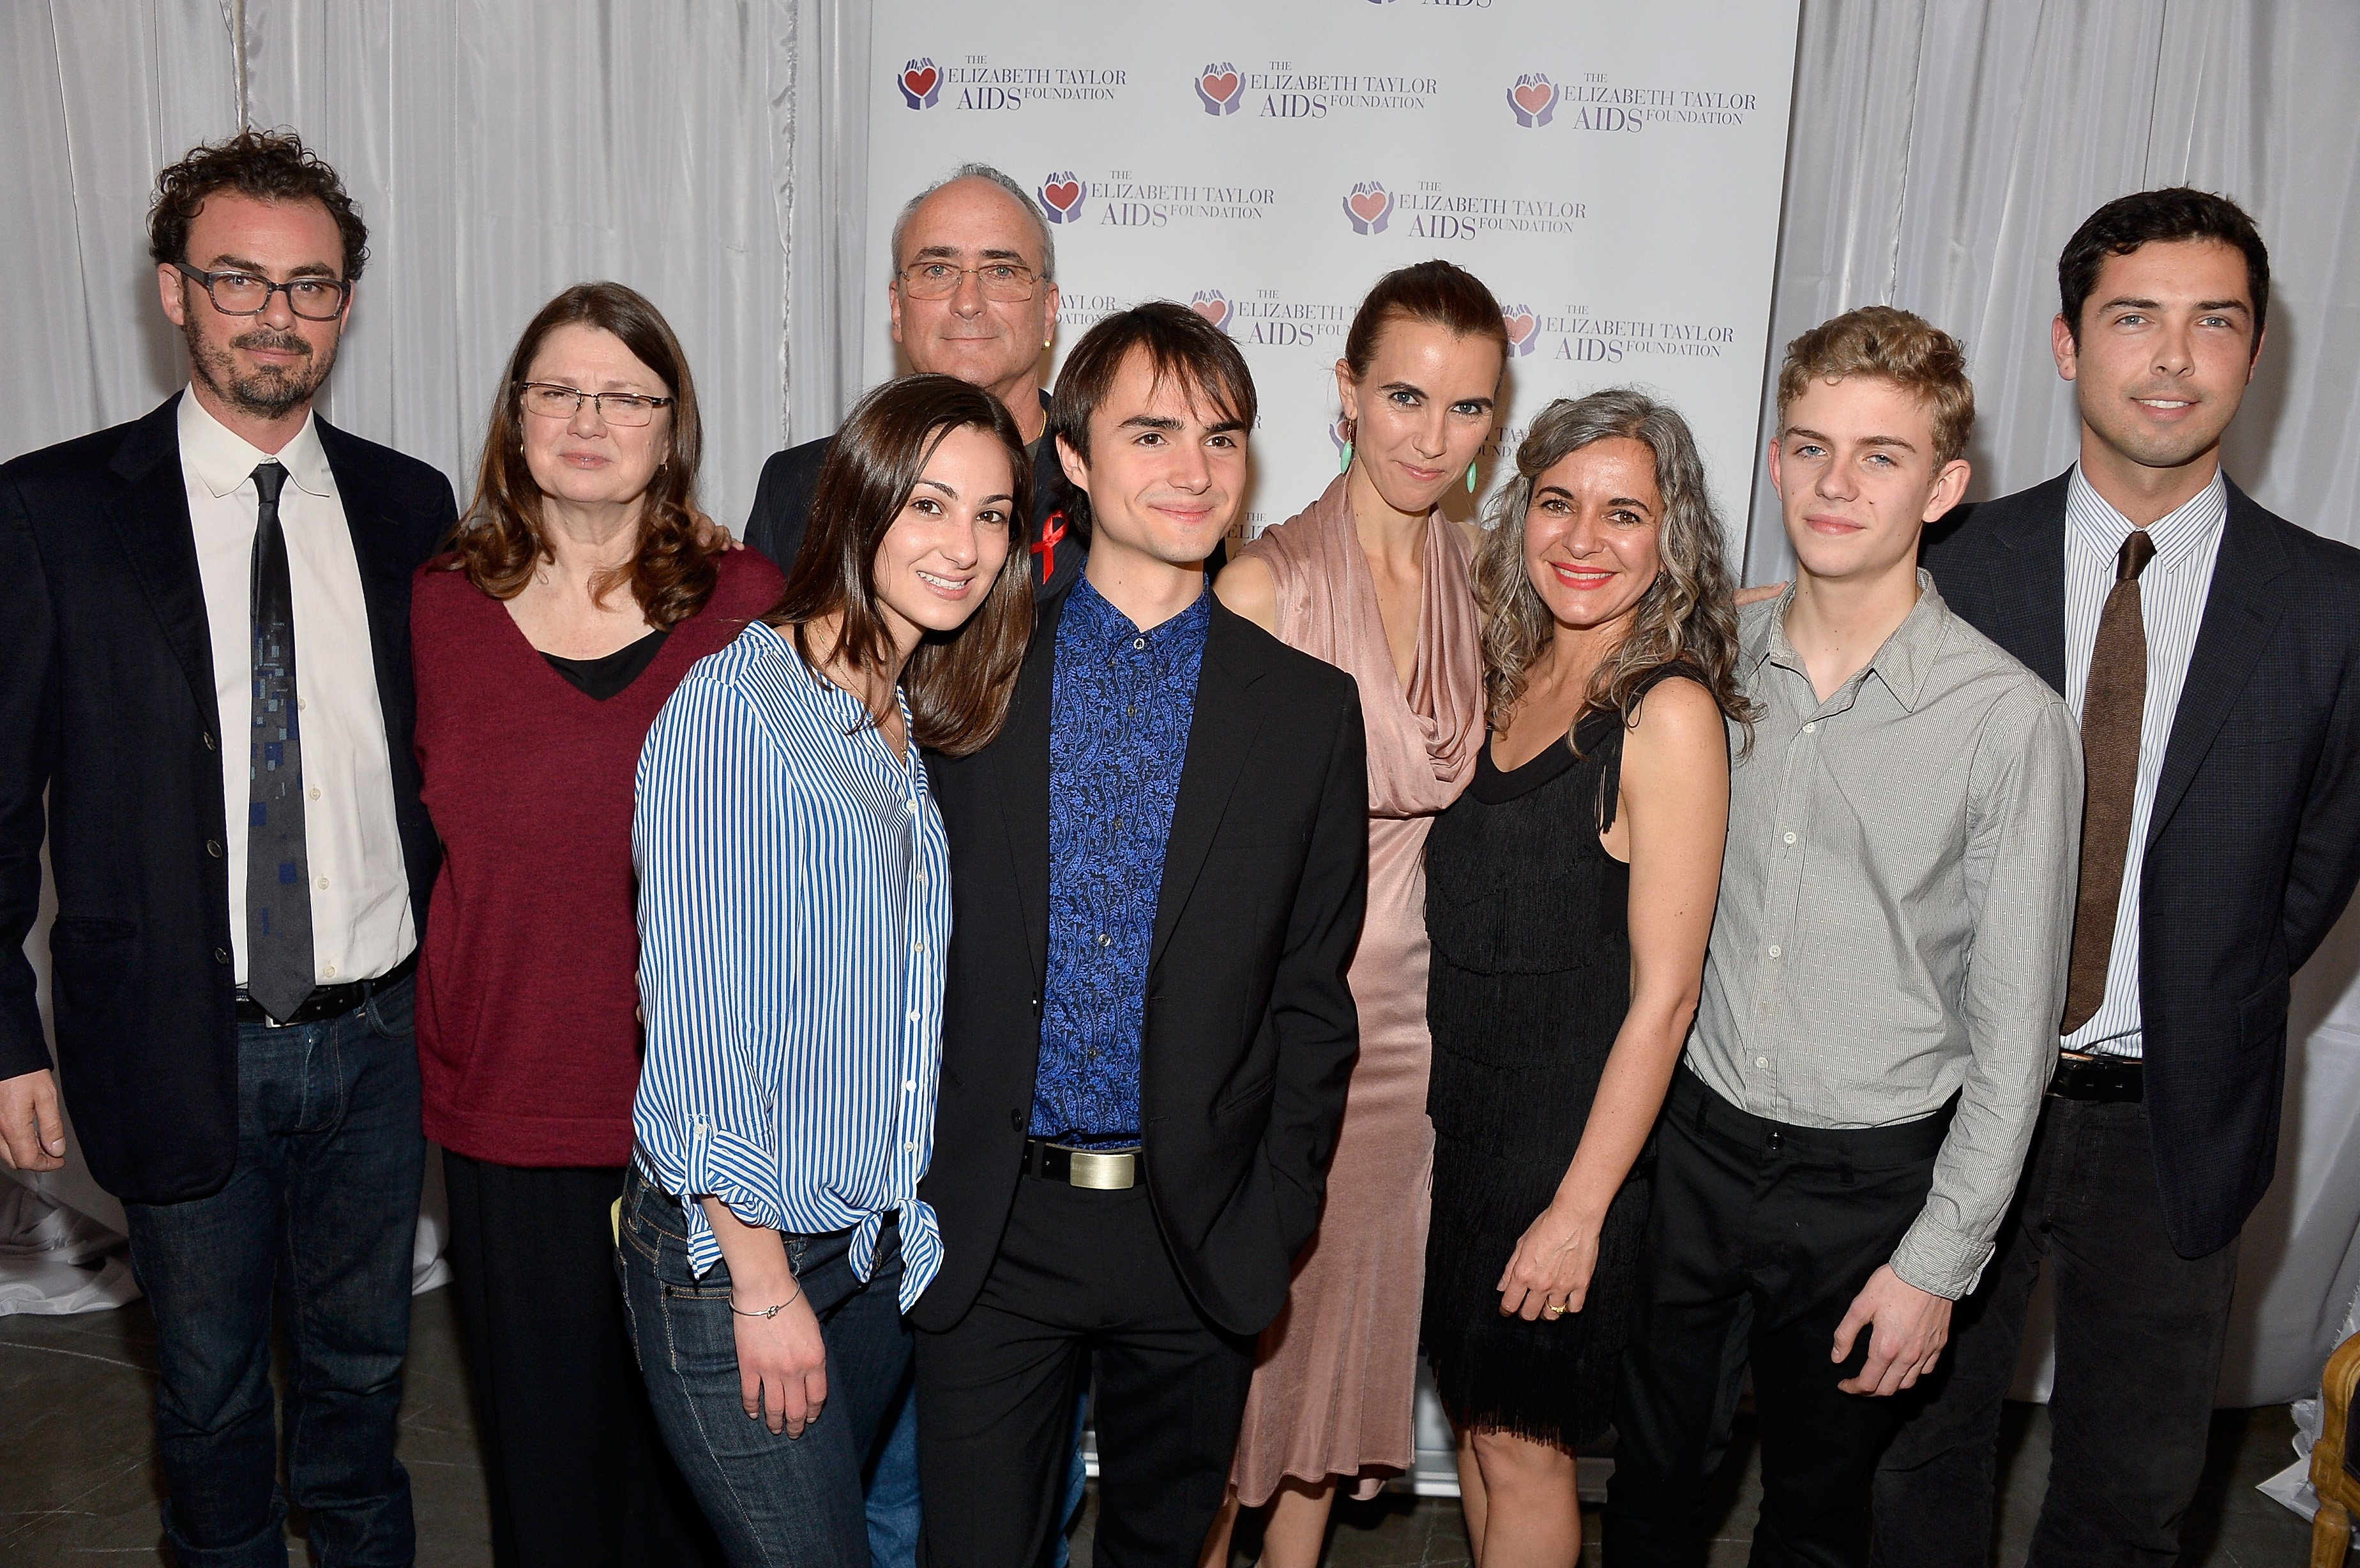 Anthony Cran, Margie Wilding, Christopher Wilding, Alexa et son petit ami Rhys Tivey, Naomi Wilding, Laela Wilding, Finn McMurray, et Caleb Wilding en 2014. I Image : Getty Images.